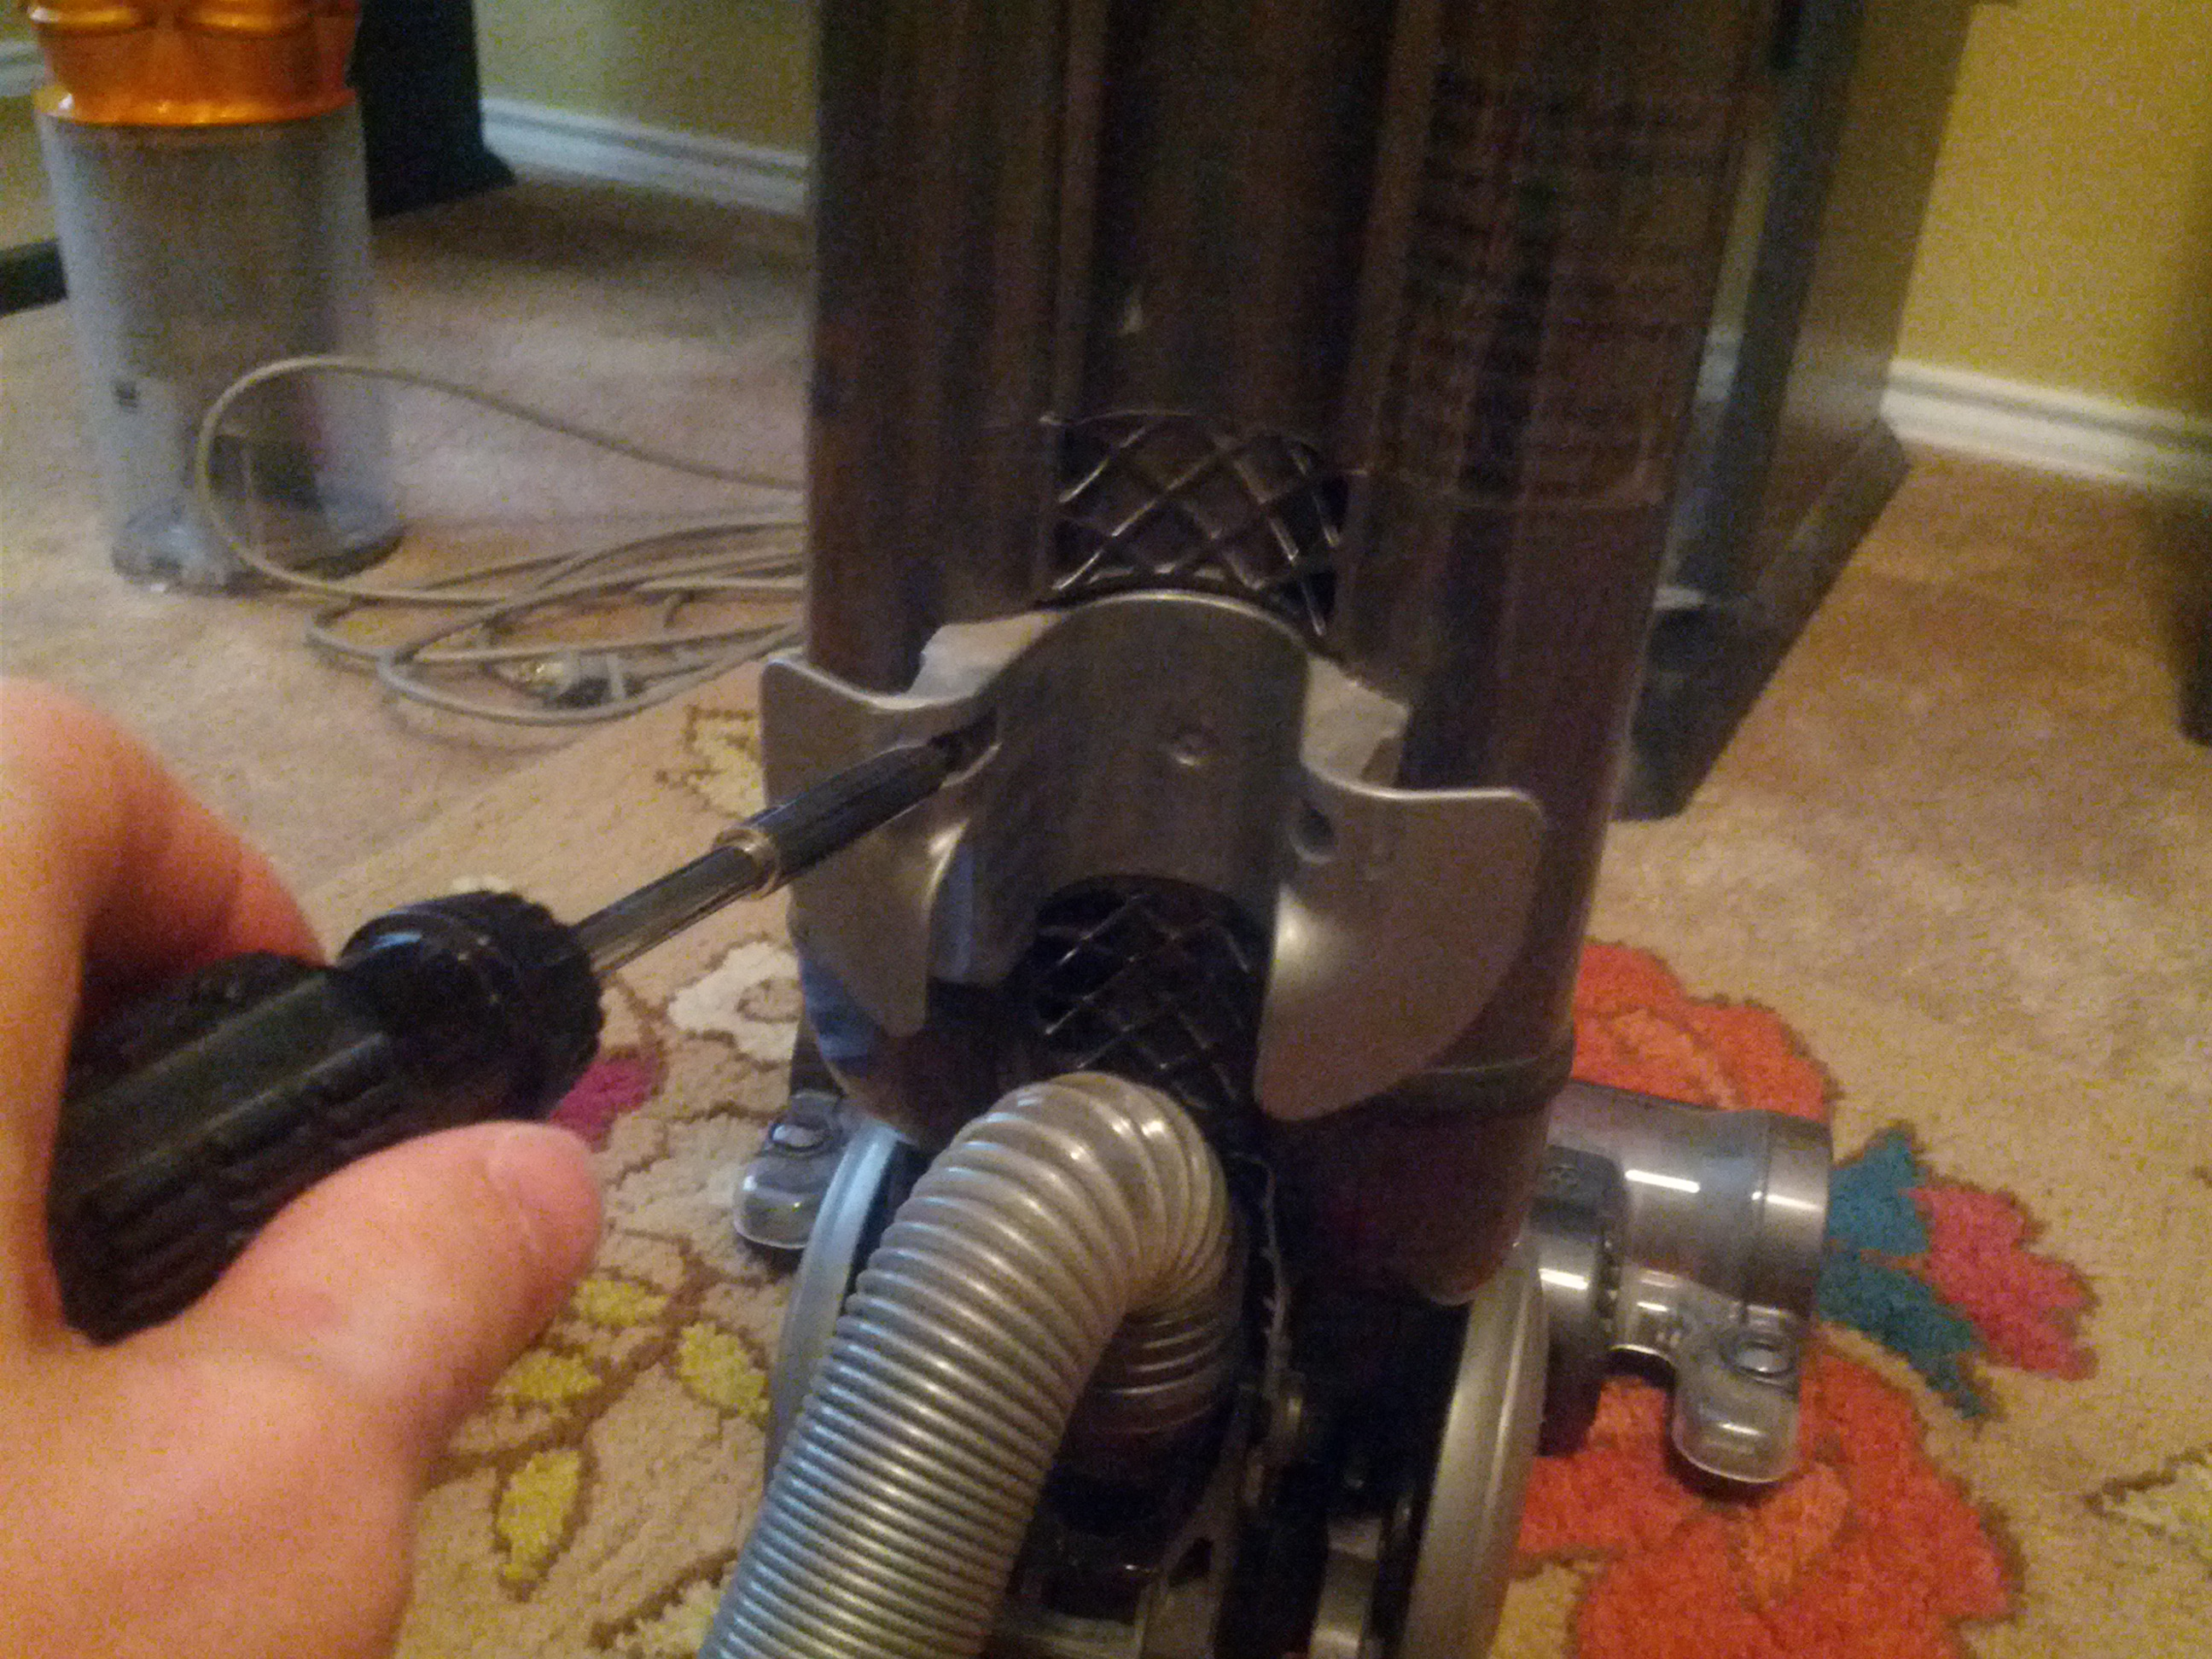 how to get the filter out of a dyson